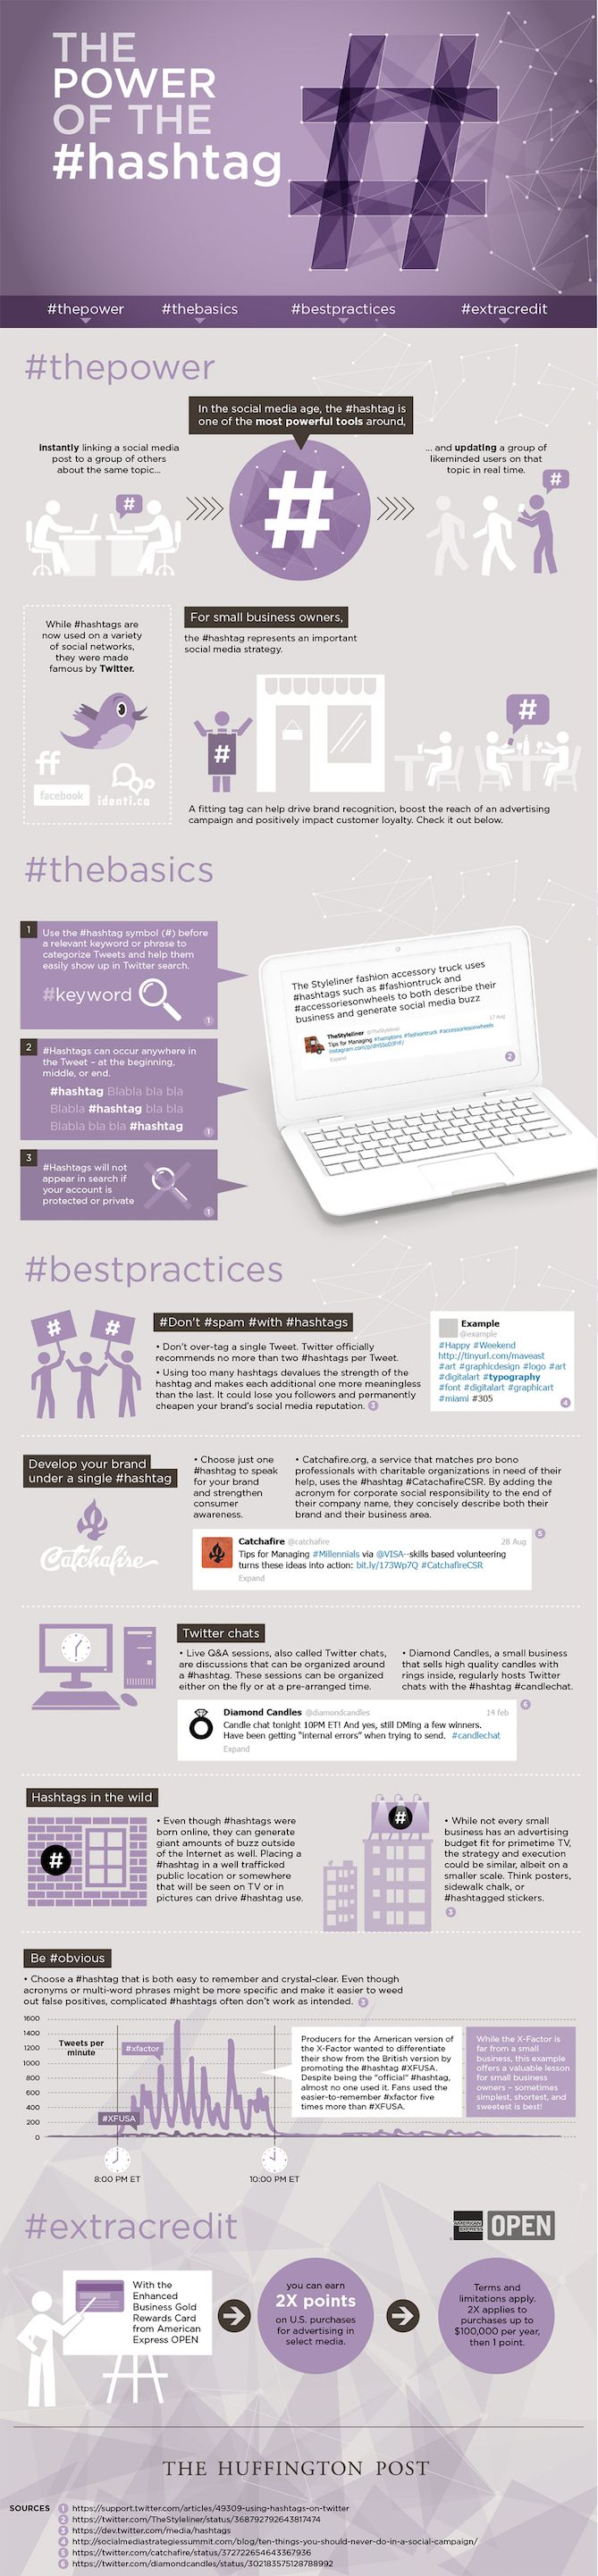 How to Harness the Power of the Hashtag [Infographic], via @HubSpot